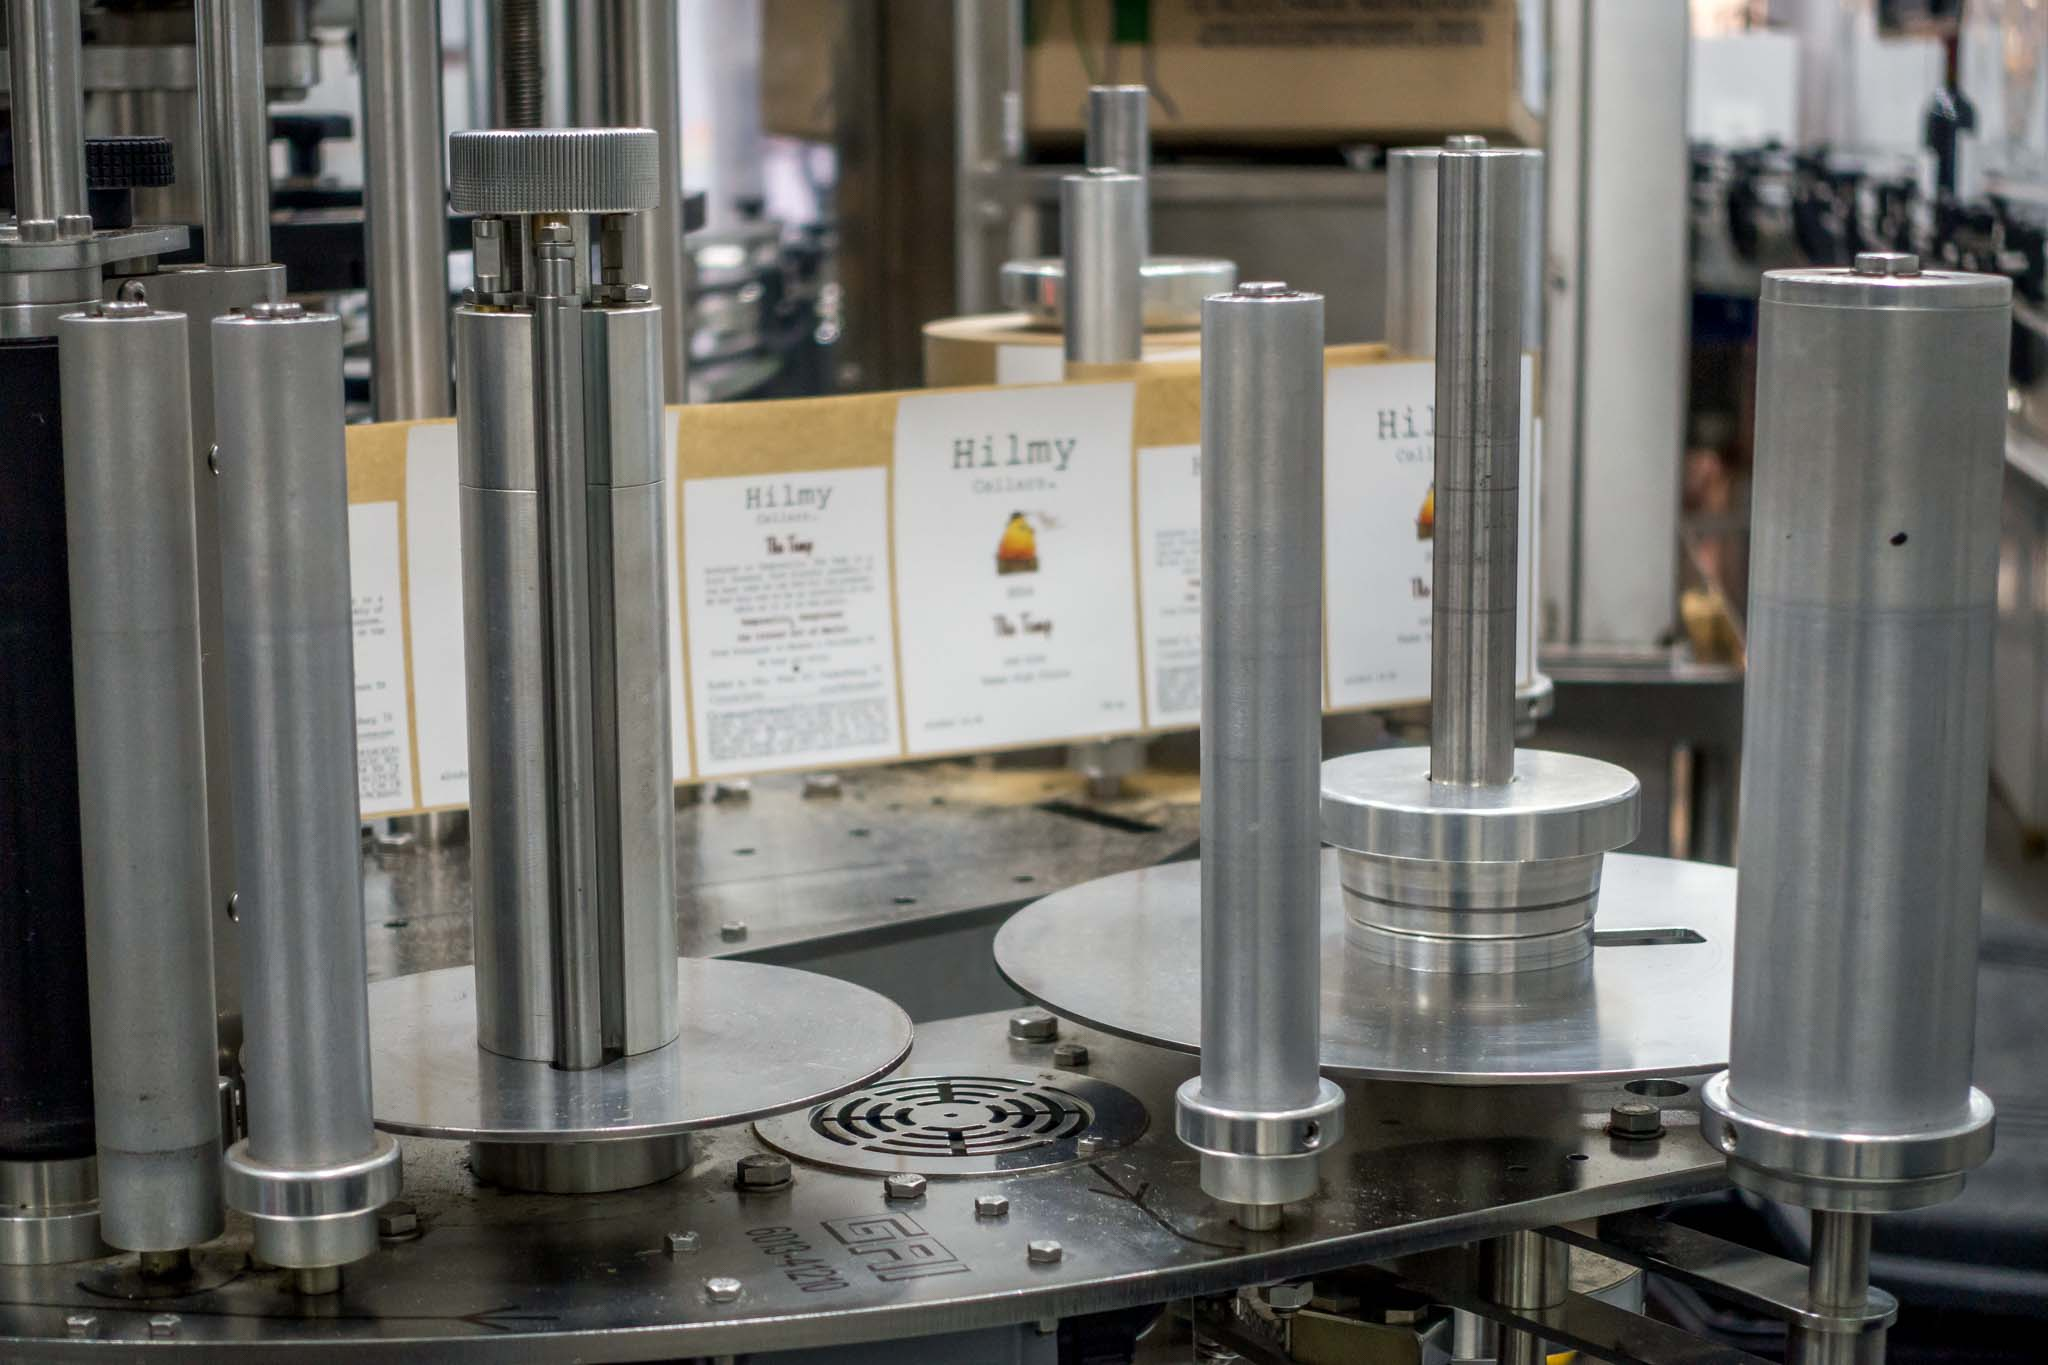 Bottling line and labels at Hilmy Cellars